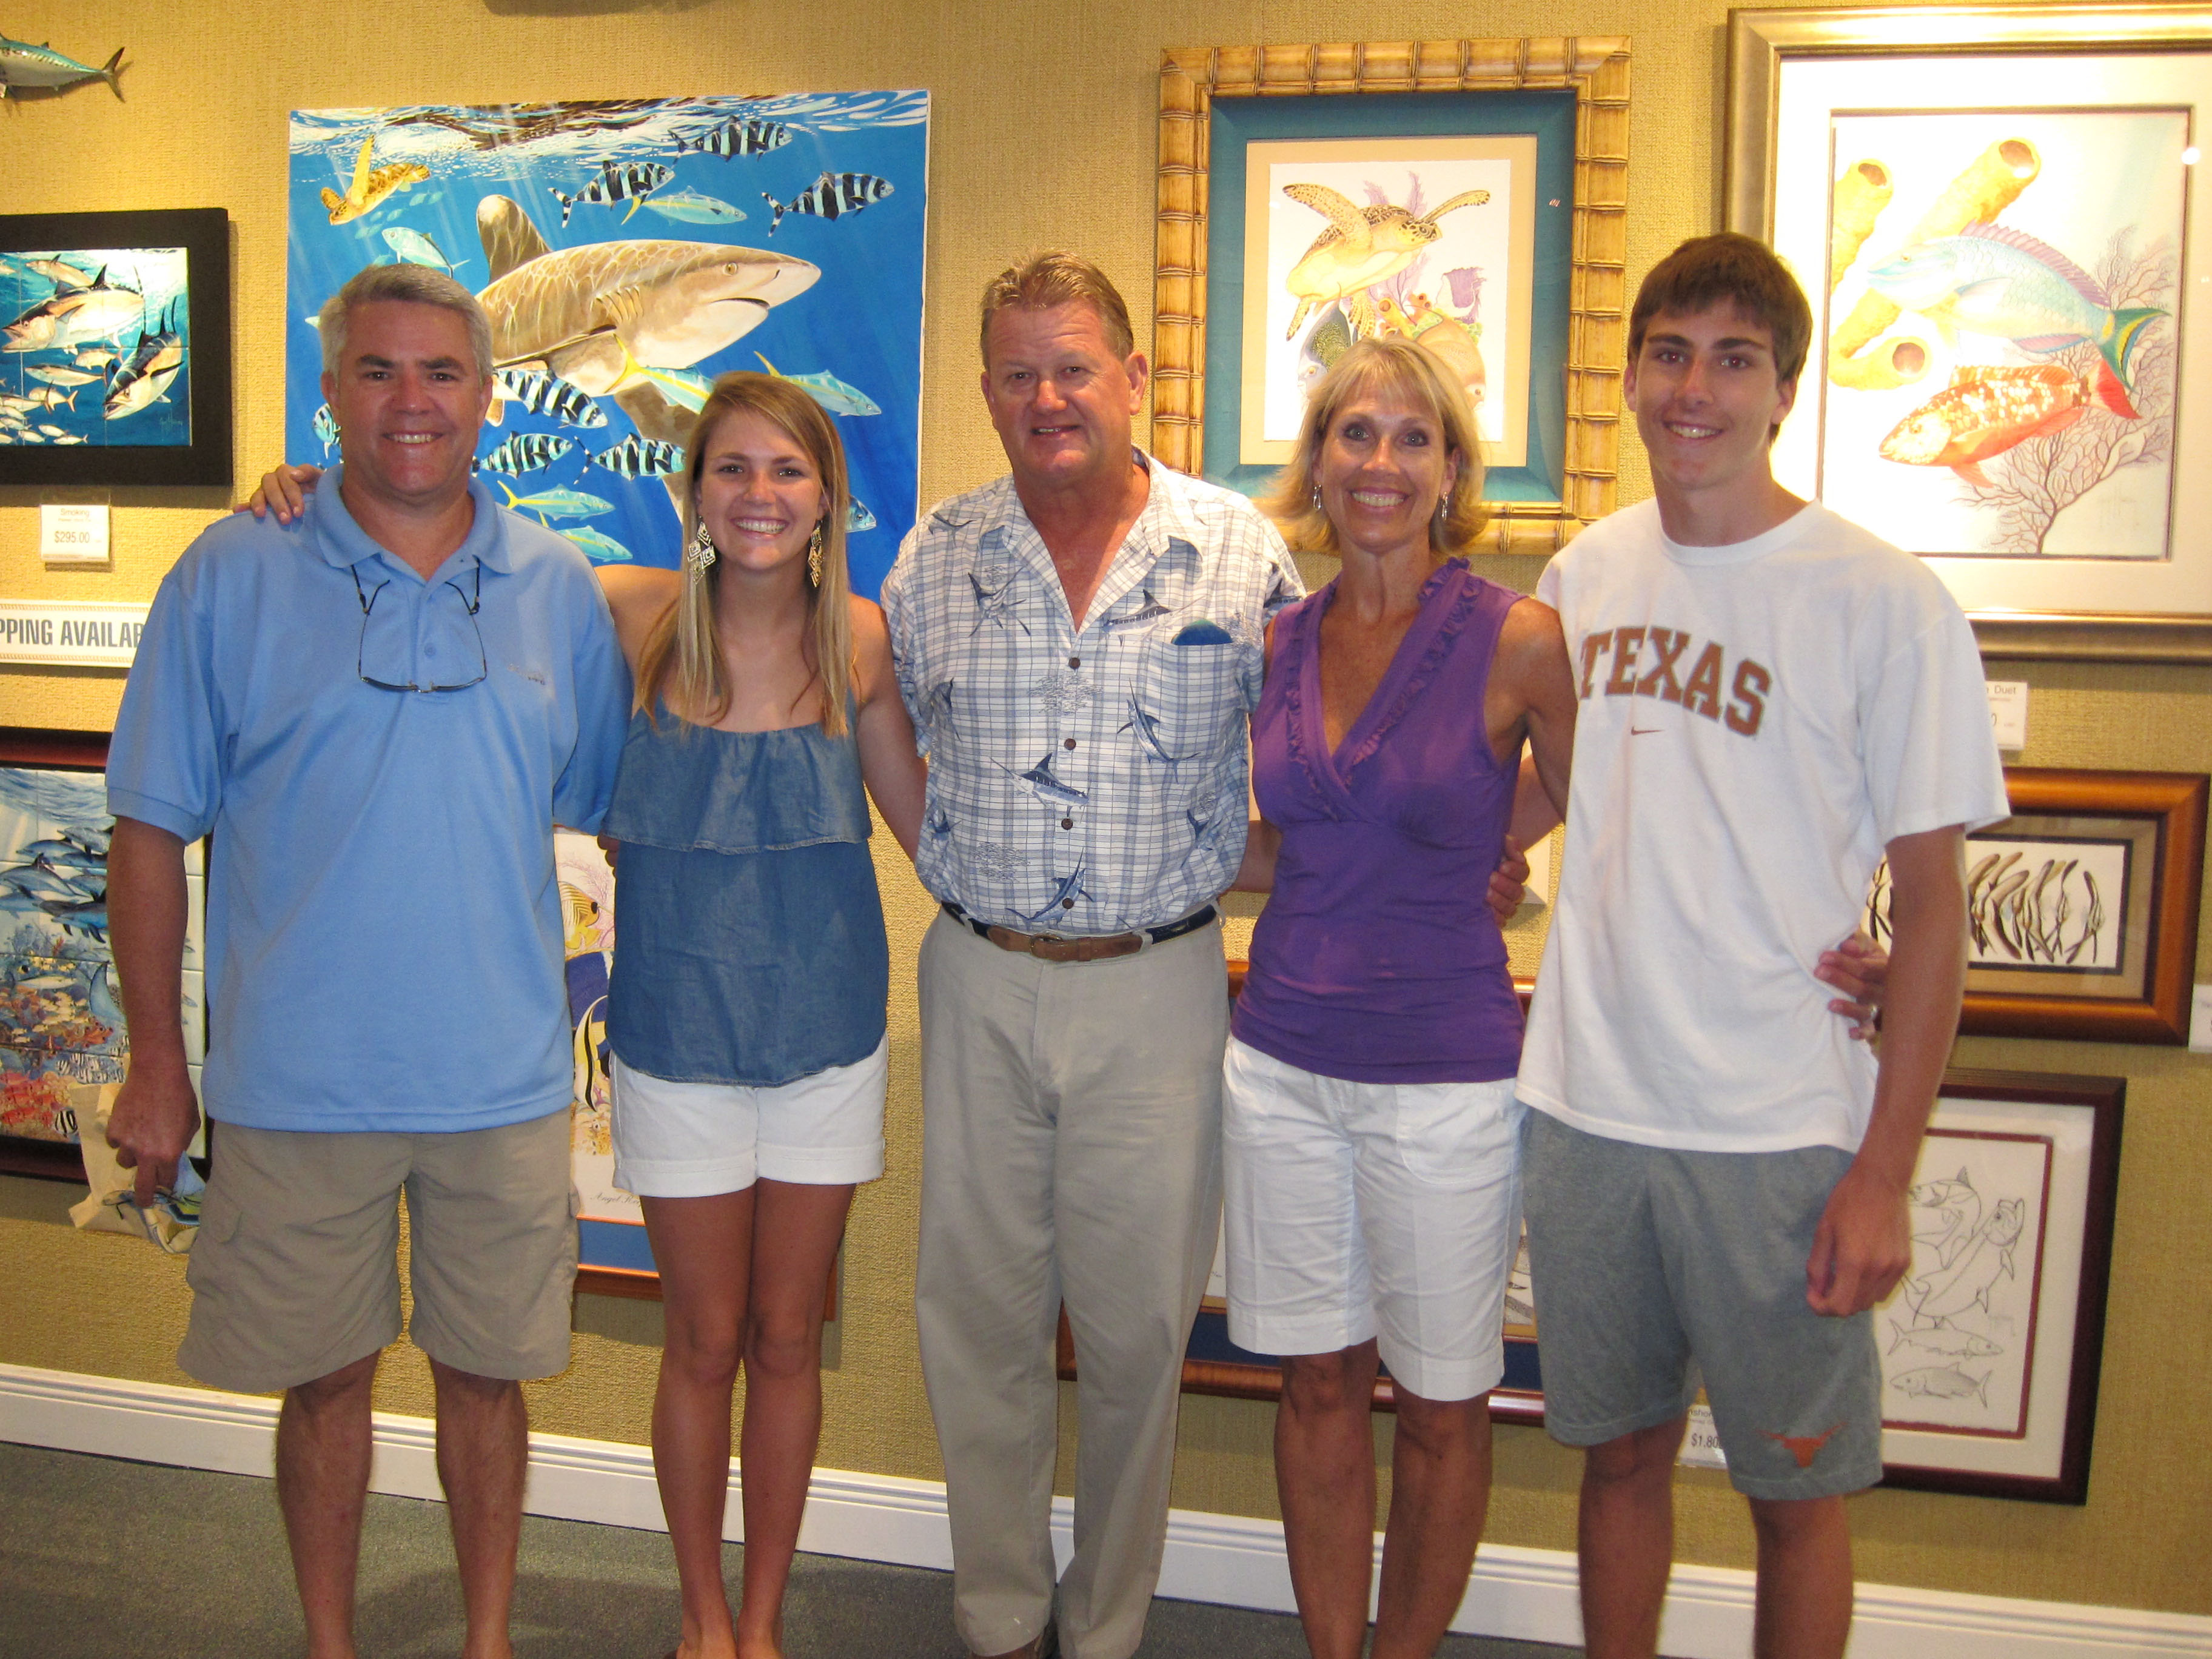 Meeting Guy Harvey. TSM/TFM.